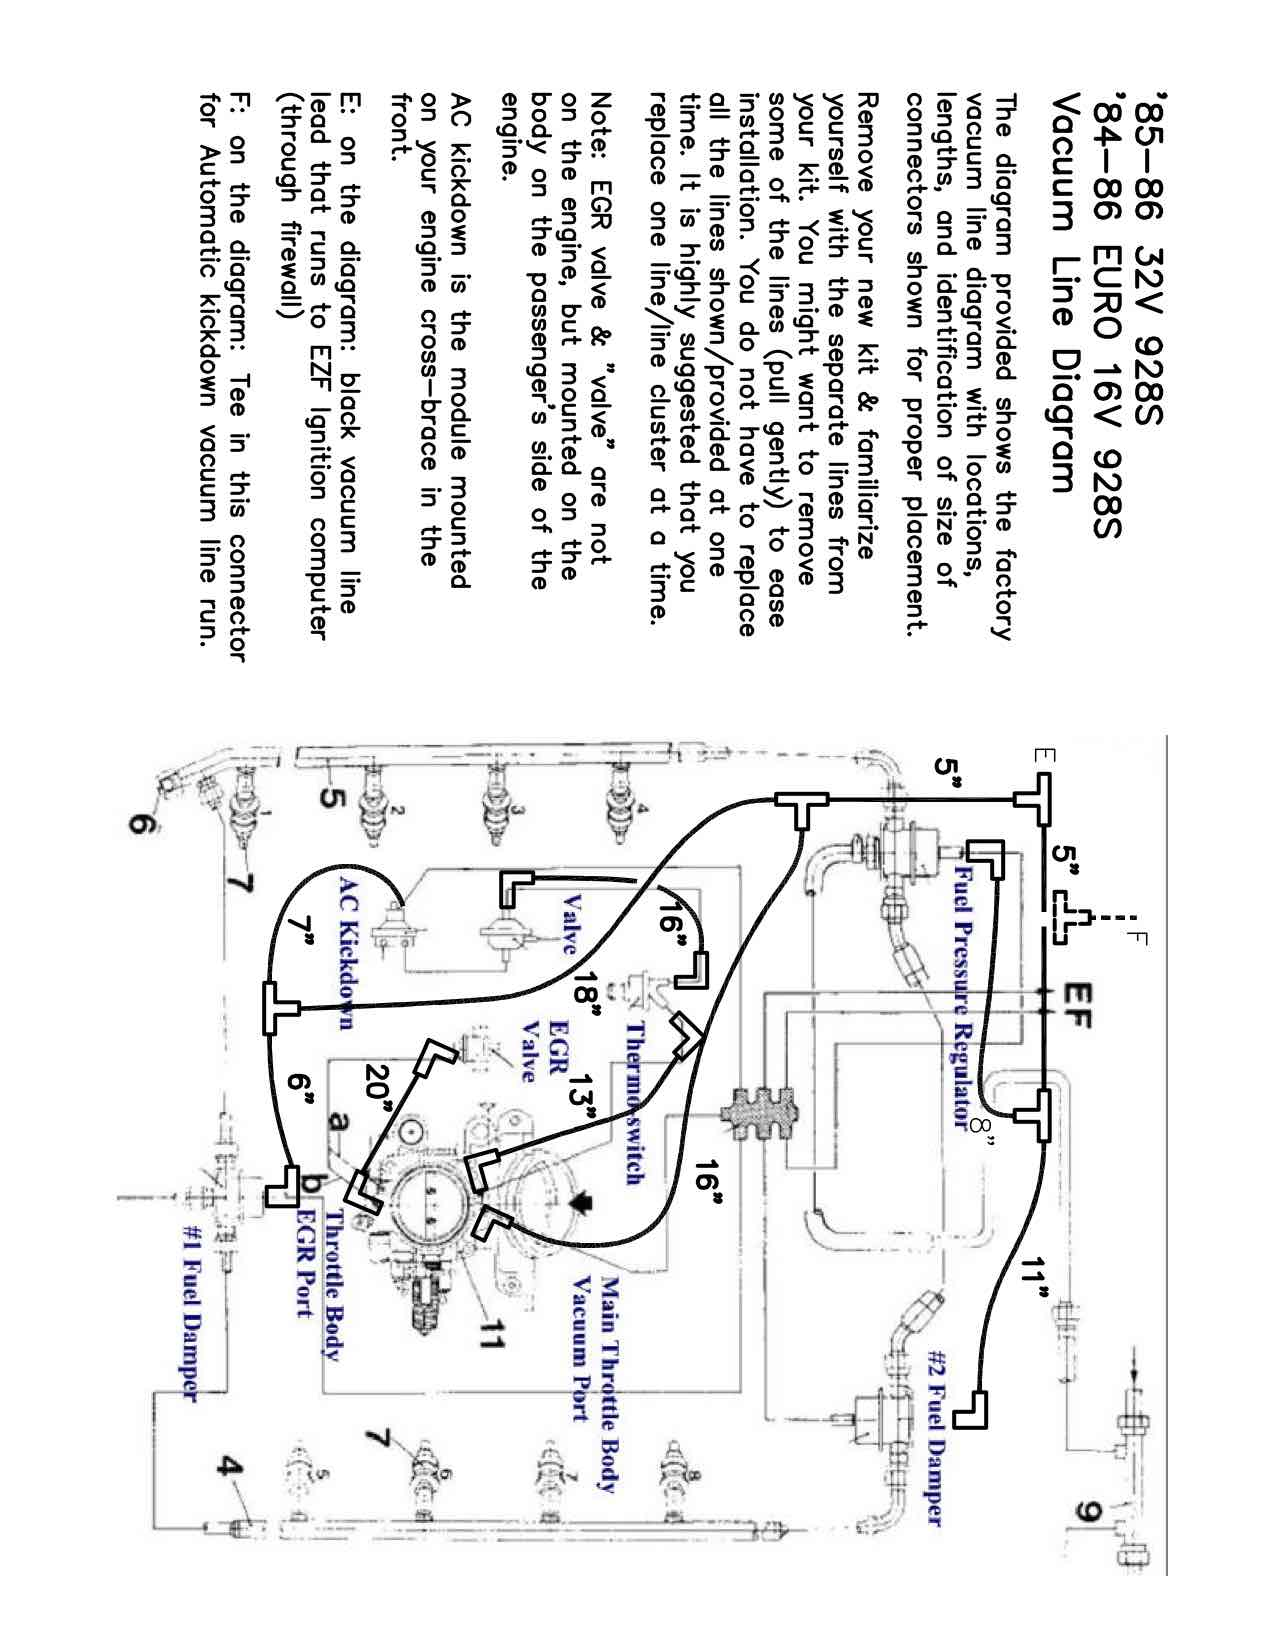 1983 Porsche 944 Wiring Diagram